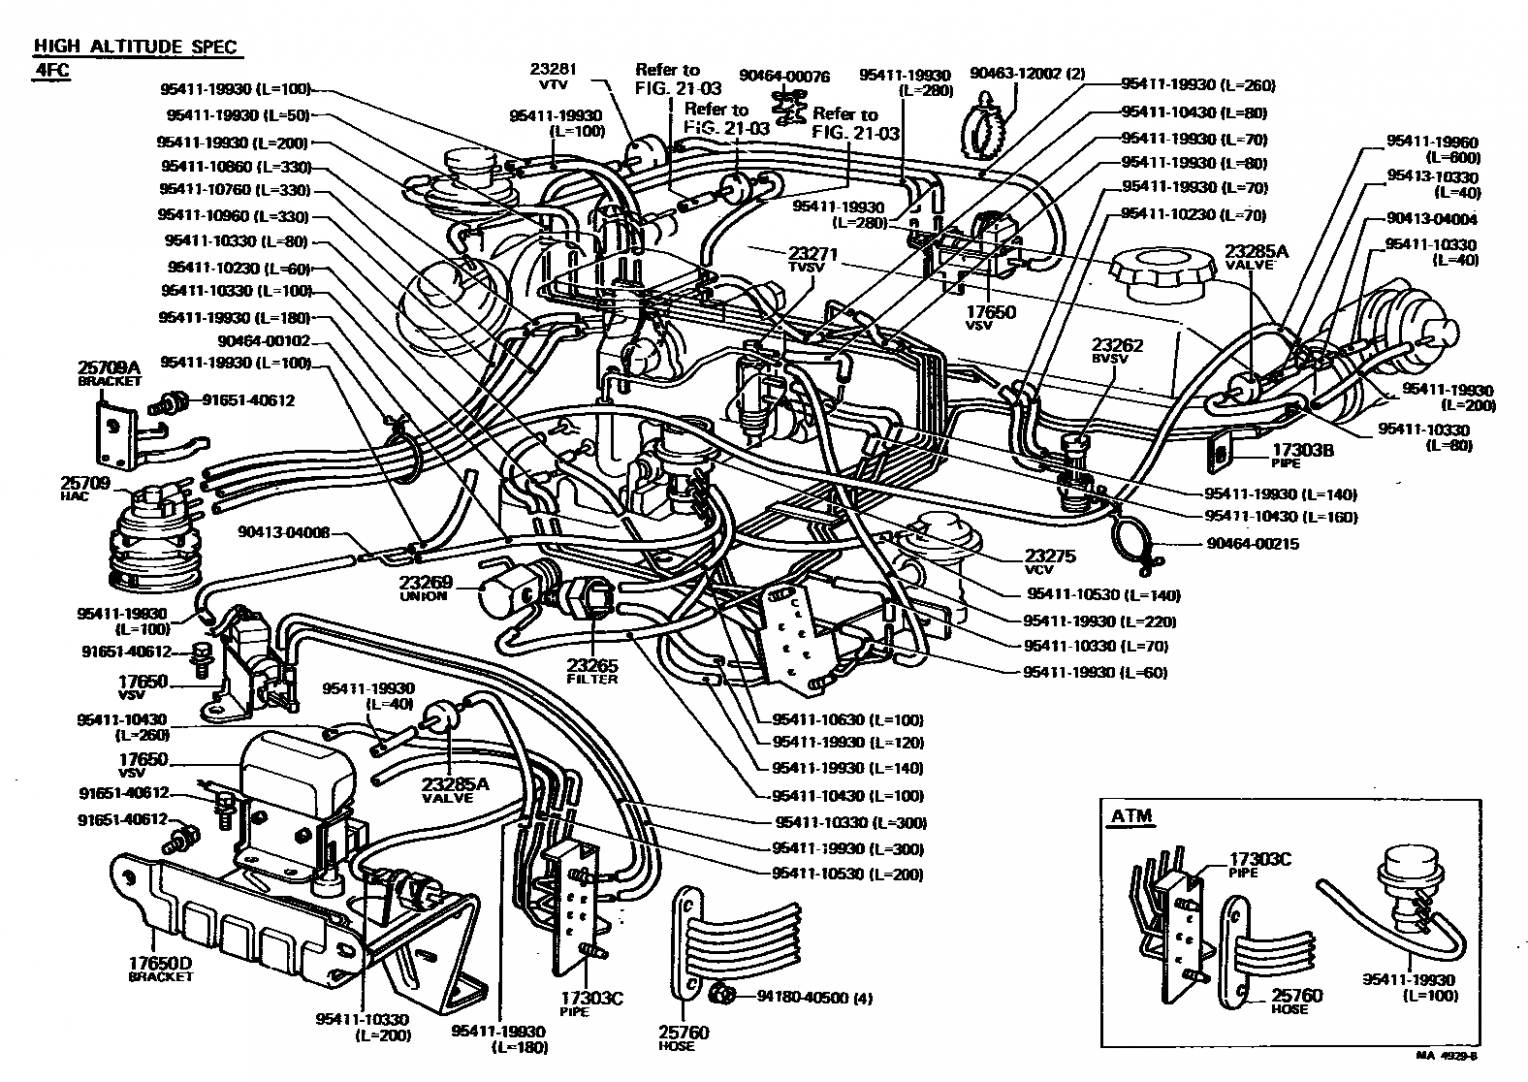 2004 Toyota Tacoma Engine Diagram - wiring diagram load-total -  load-total.hoteloctavia.it | 1997 Toyota Tacoma Engine Diagram |  | hoteloctavia.it